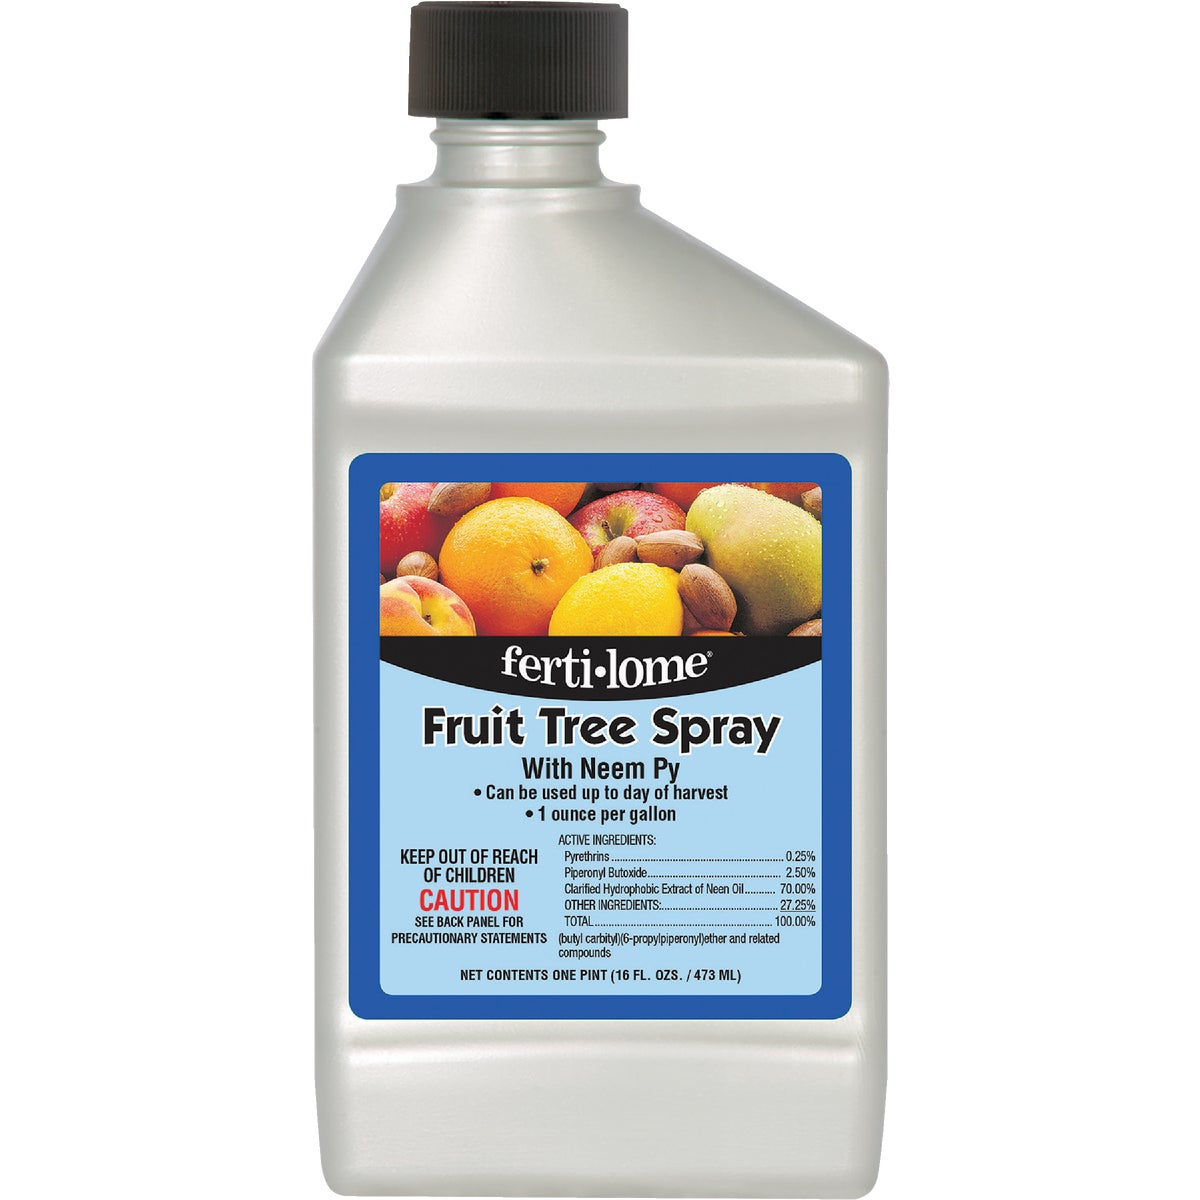 16OZ FRUIT TREE SPRAY - 10131 by Vpg Fertilome